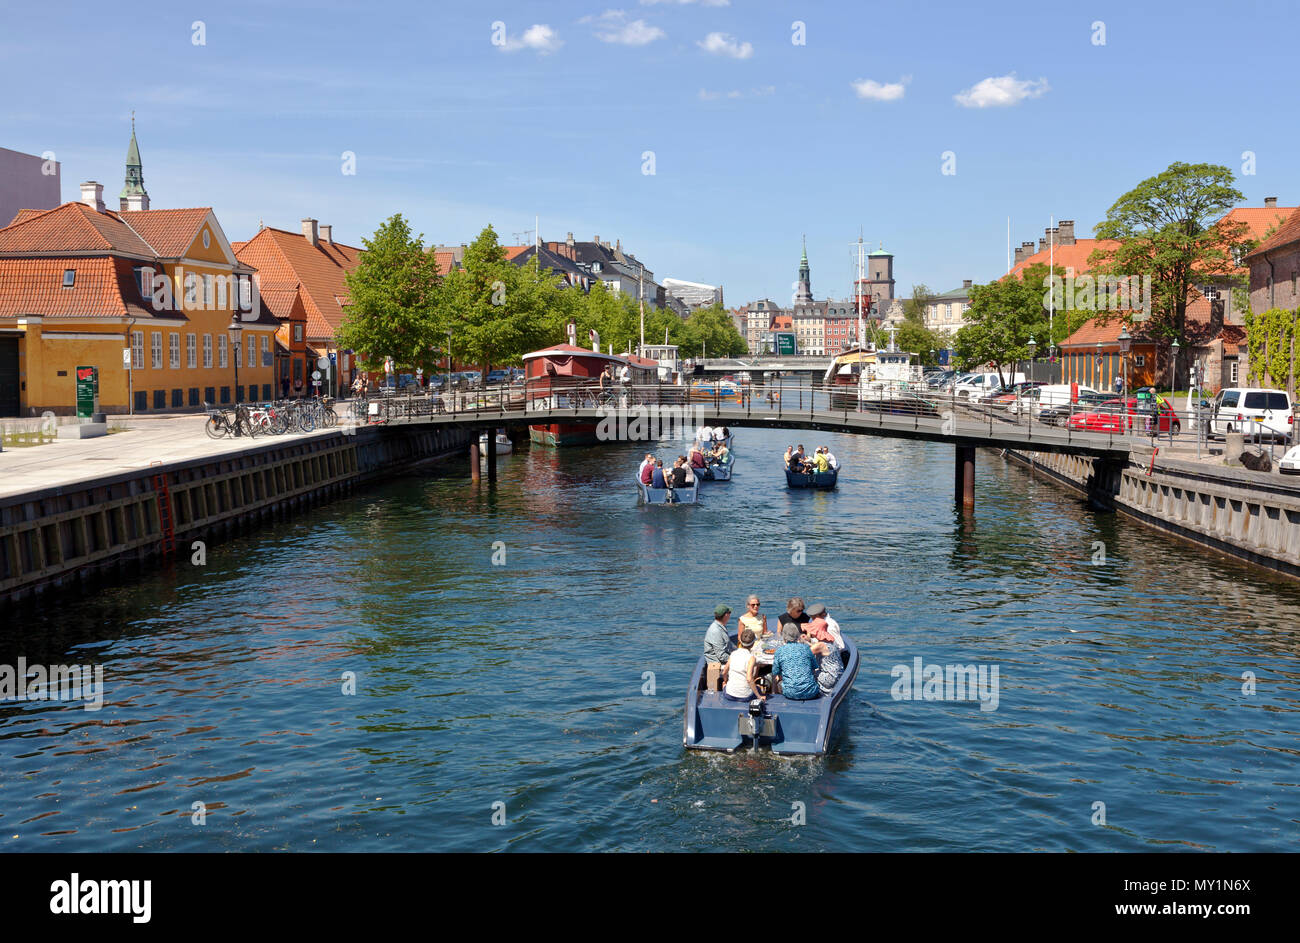 Electric Goboat picnic tour boats in the Frederiksholm Canal in Copenhagen, Denmark.Pedestrian bridge and the Prince's Bridge, Prinsens Bro. - Stock Image